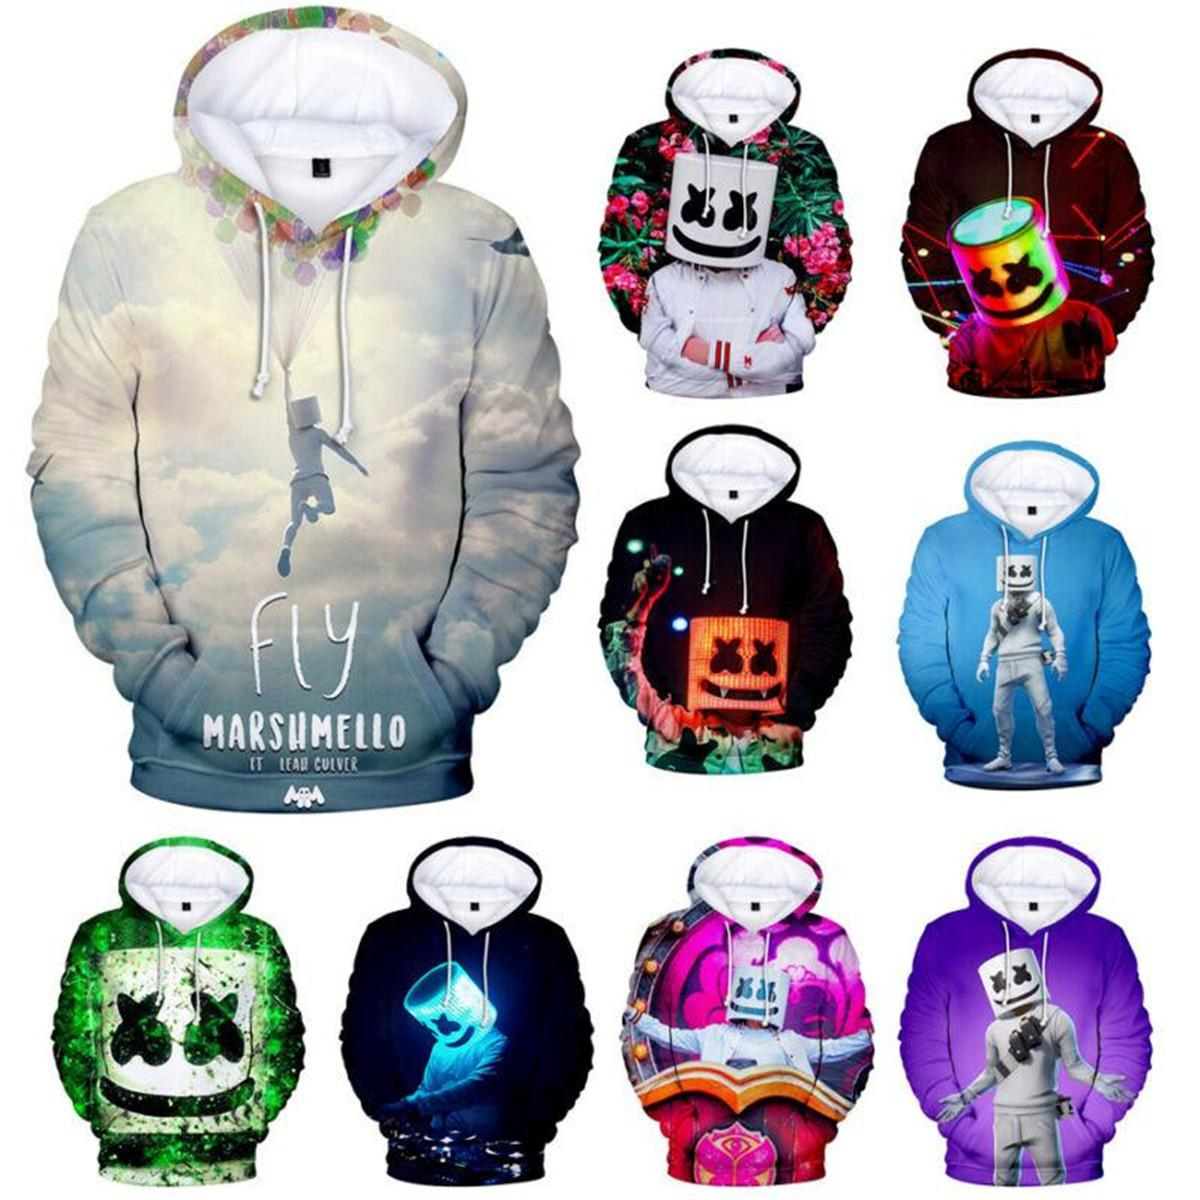 DJ Marshmello Men/'s Sports Hoodie Loose Hooded Coat Thin Music Sweatshirt Blouse